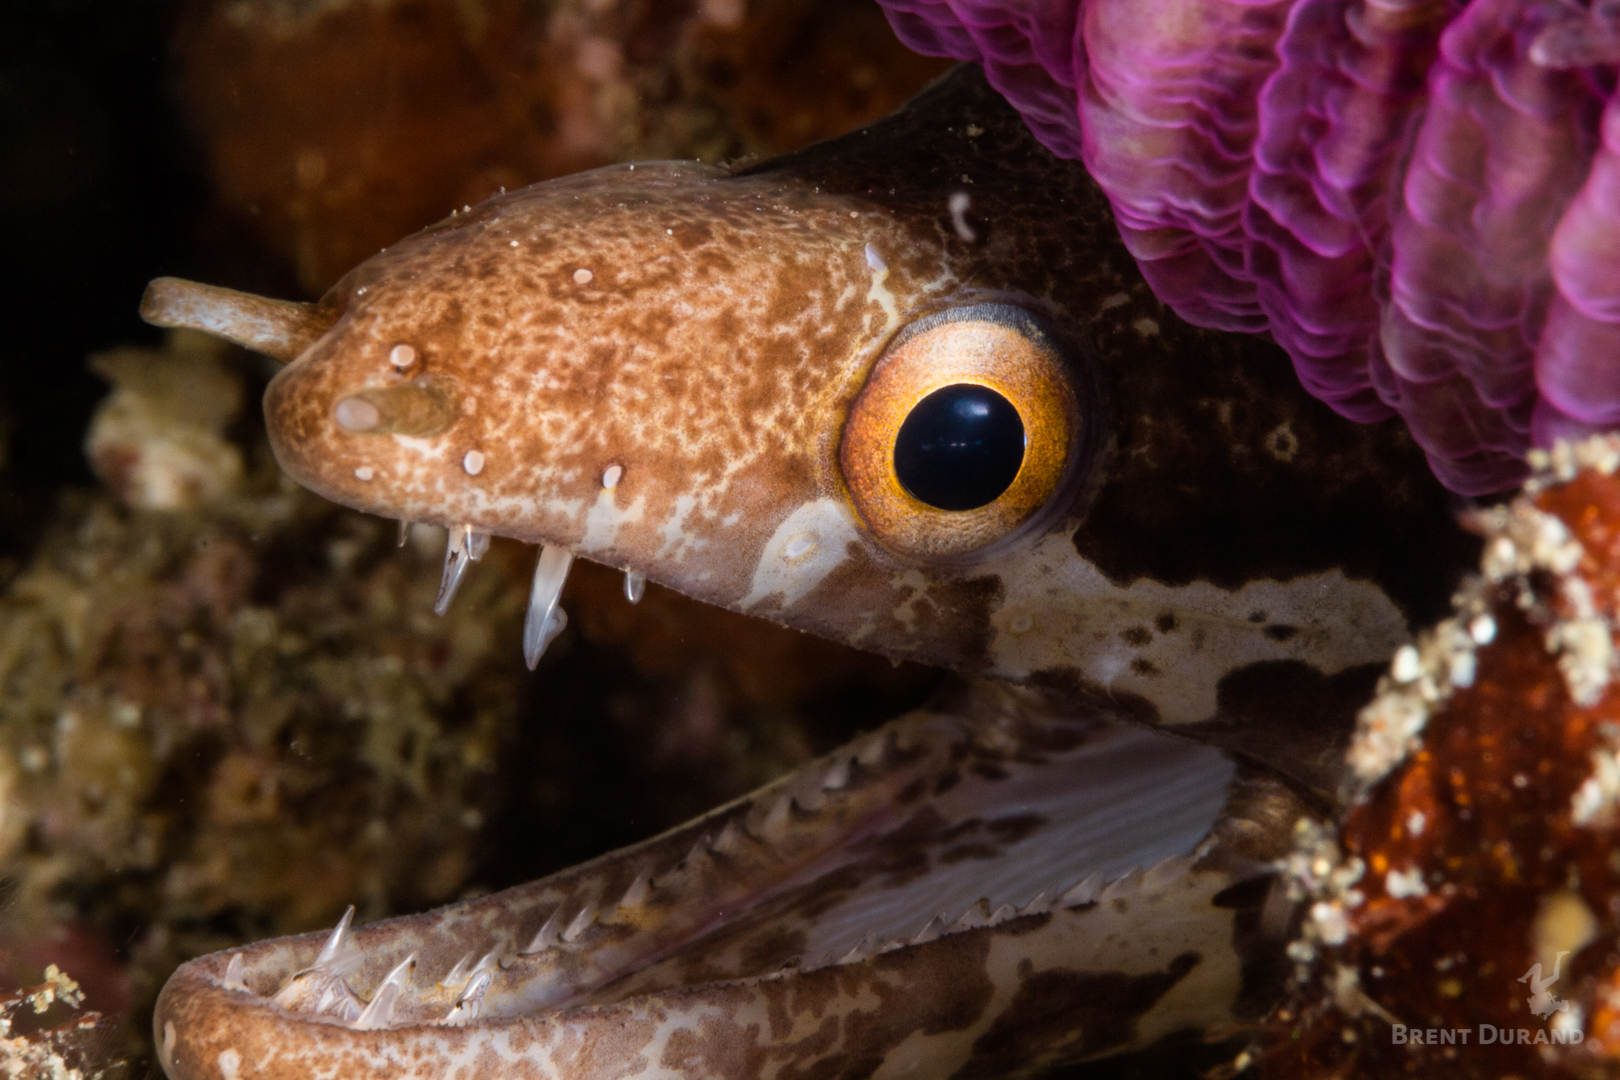 A barred-fin moray eel eyes the camera in this intimate portrait.